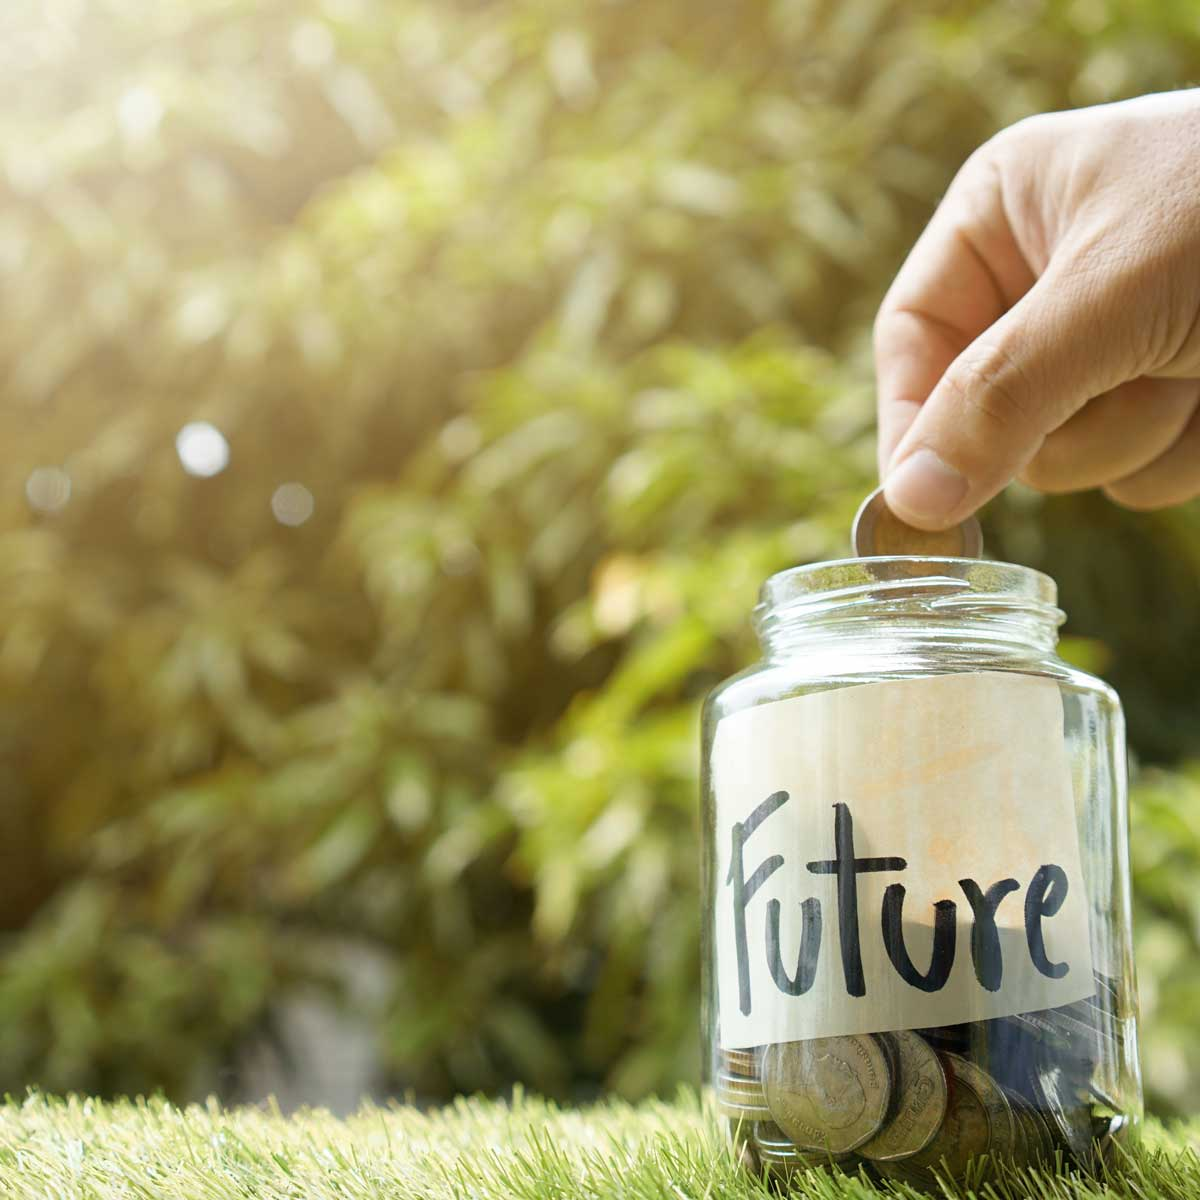 Money saving, Hand putting coin in glass jar with coins inside For now and future money. Concept of saving money for future.